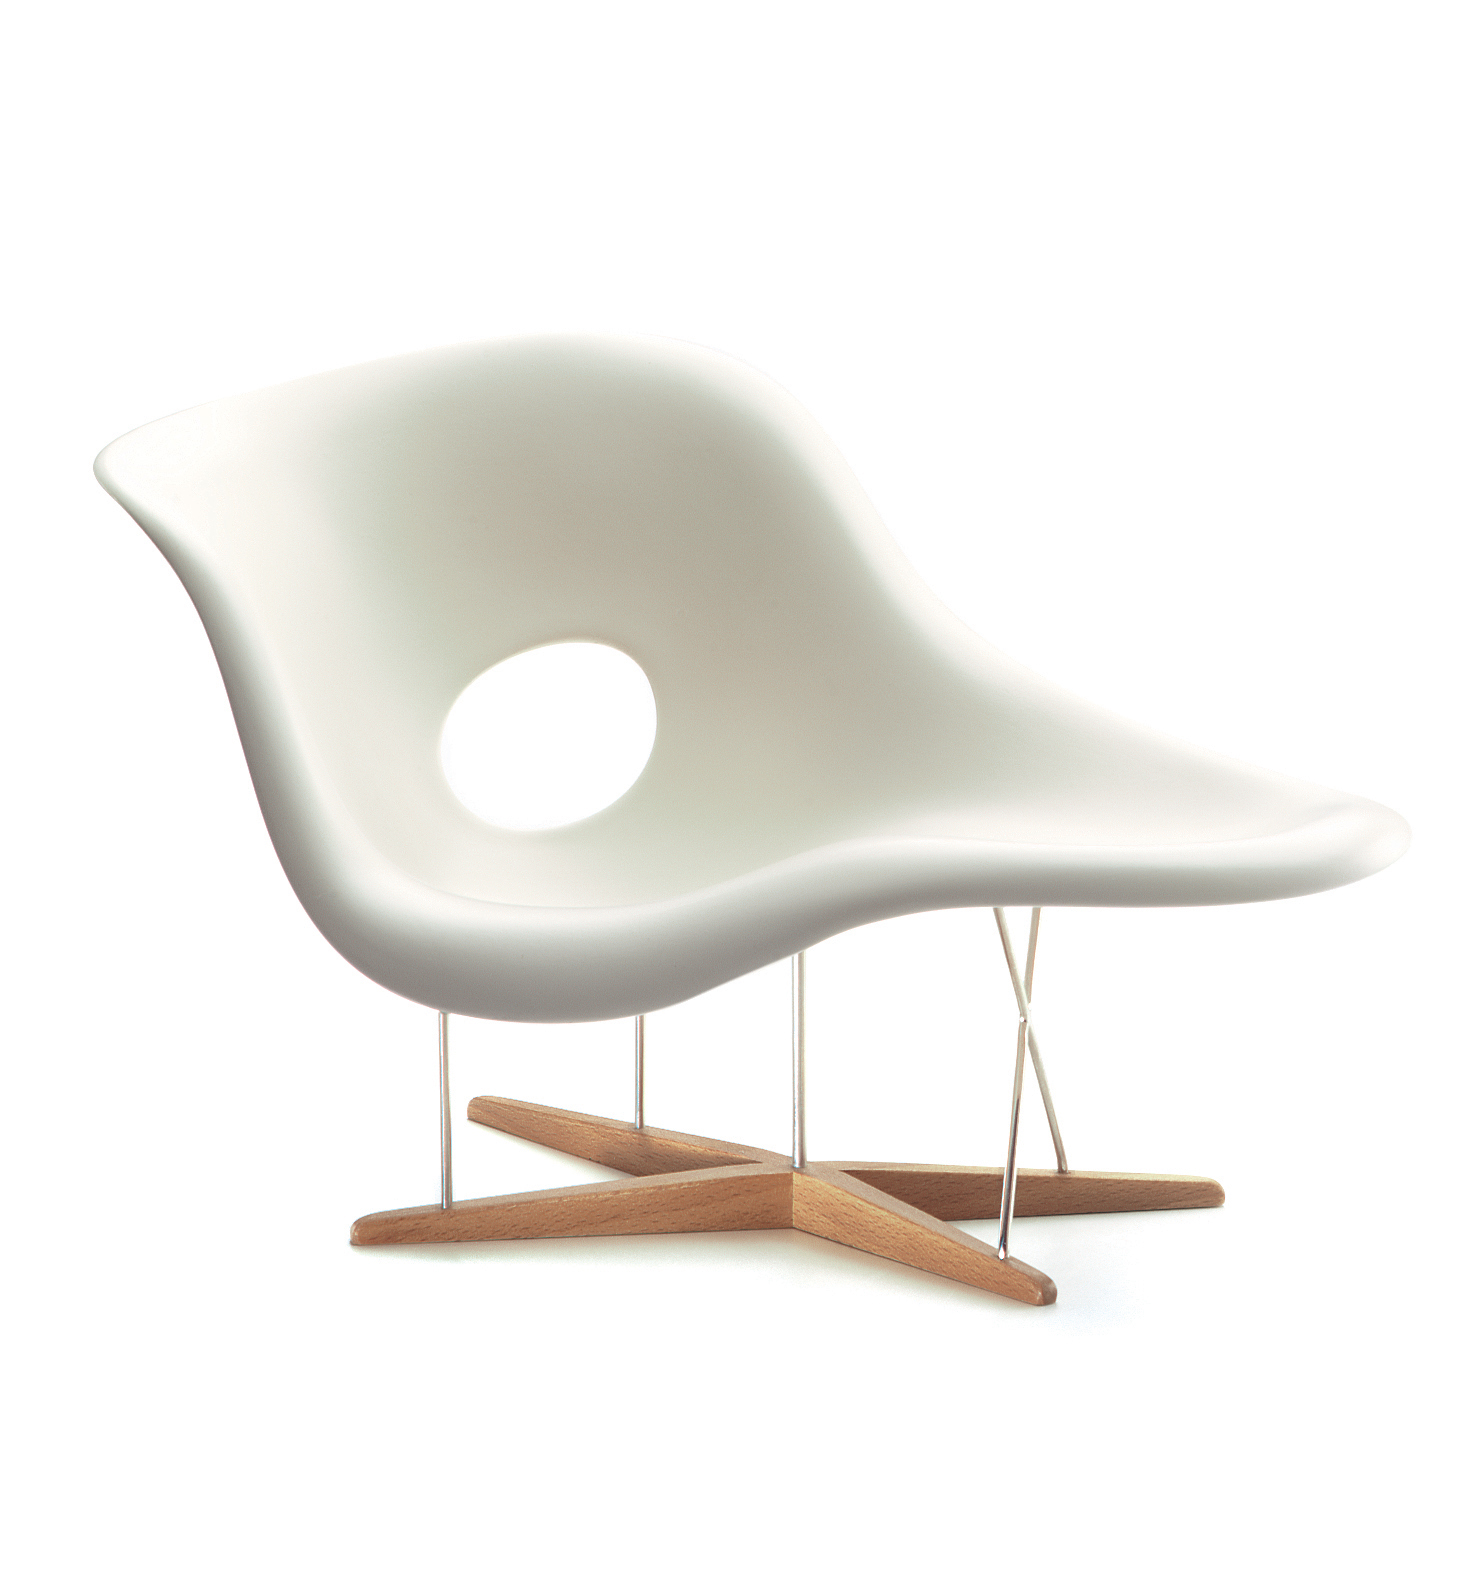 1001 chairs la chaise charles ray eames 0007 - La chaise longue logo ...